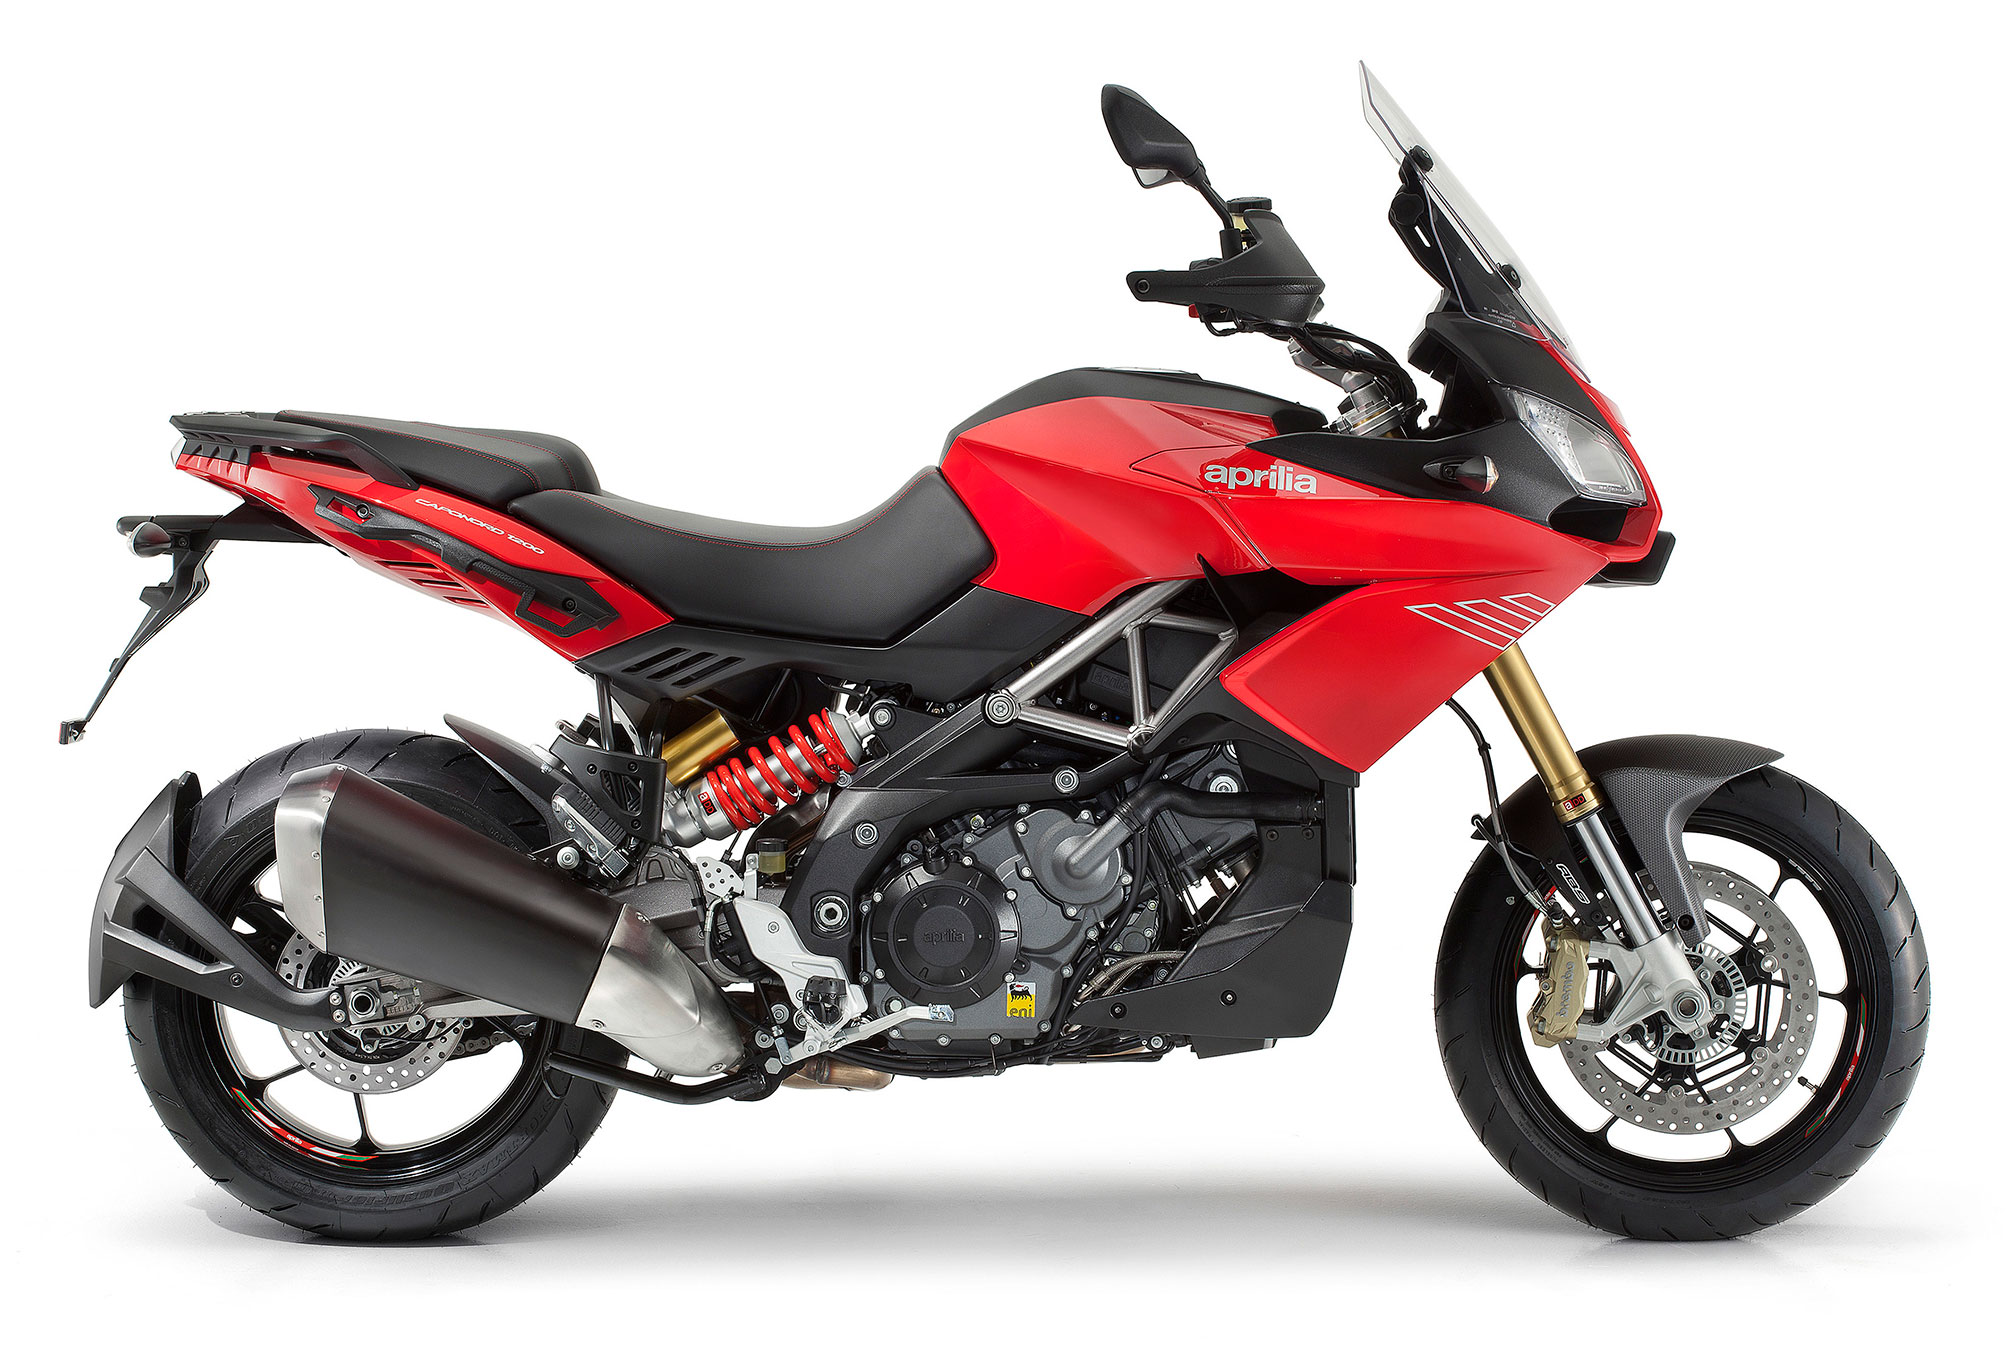 Aprilia Caponord 1200 ABS Travel Pack pics #8305